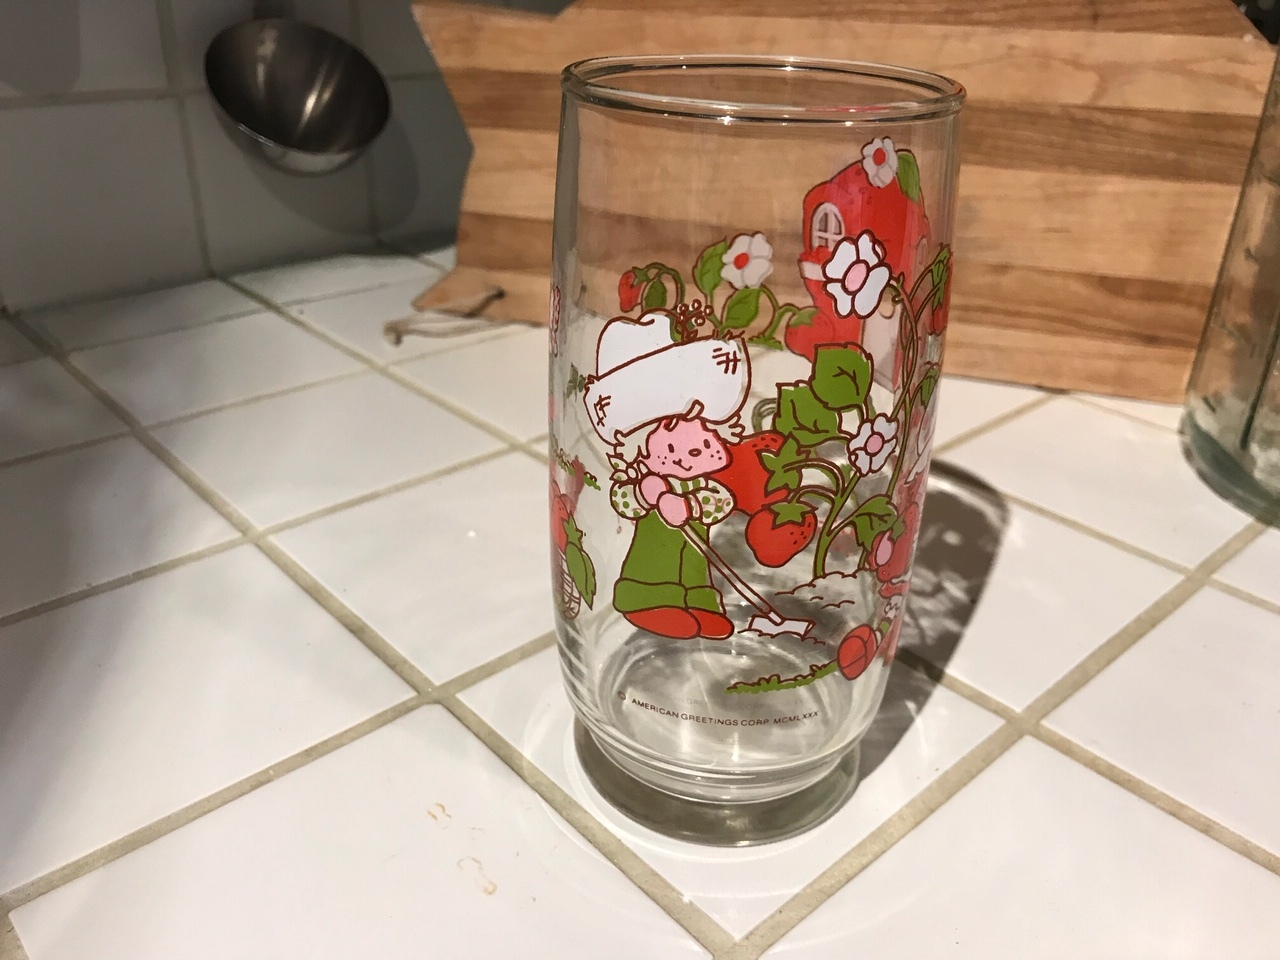 Vintage 1980 Strawberry Shortcake Glass: 65,800 ppm Lead + 2,622 ppm Cadmium + 77 ppm MERCURY! [90 ppm Lead is unsafe for kids.]